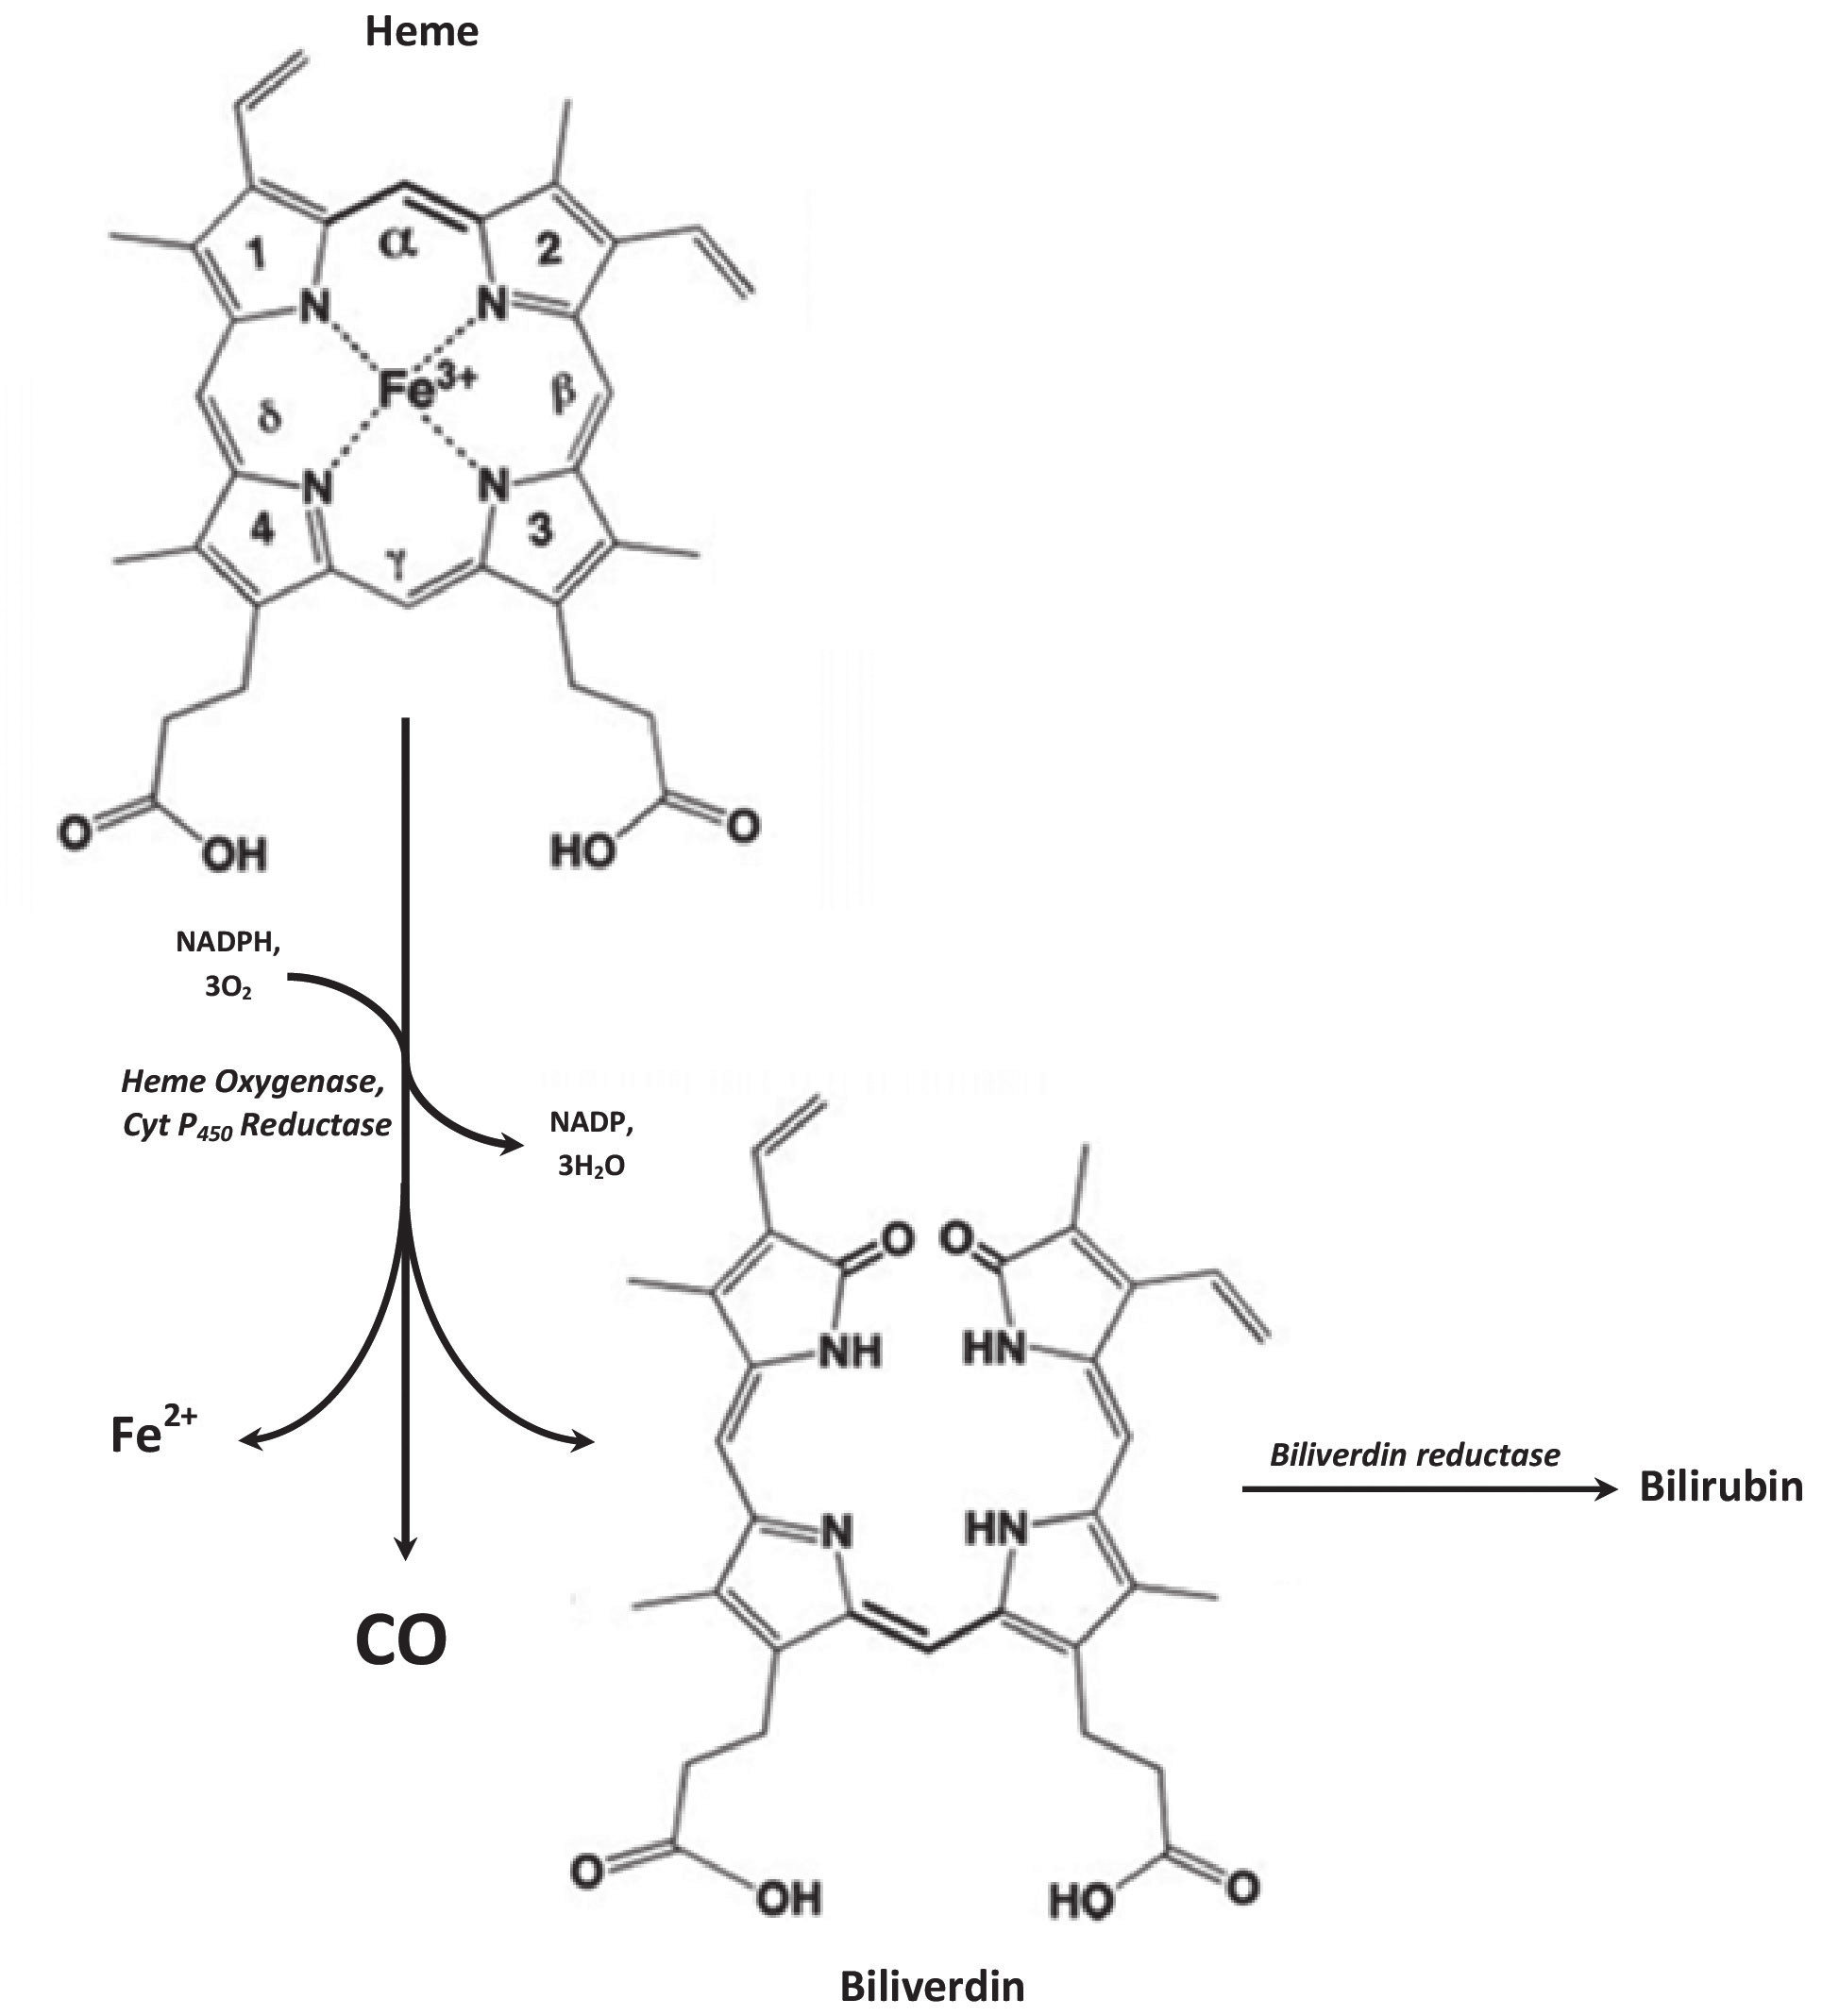 Heme degradation pathway: Heme oxygenase catalyzes rate limiting step of heme degradation. Oxidative degradation of heme molecule generates equimolar amount of CO, ferrous ion (Fe2+) and biliverdin. Biliverdin is subsequently reduced by biliverdin reductase to bilirubin. The reaction requires 3 molecules of O2 and NADPH:cytochrome P-450 reductase serves as a source of electrons.